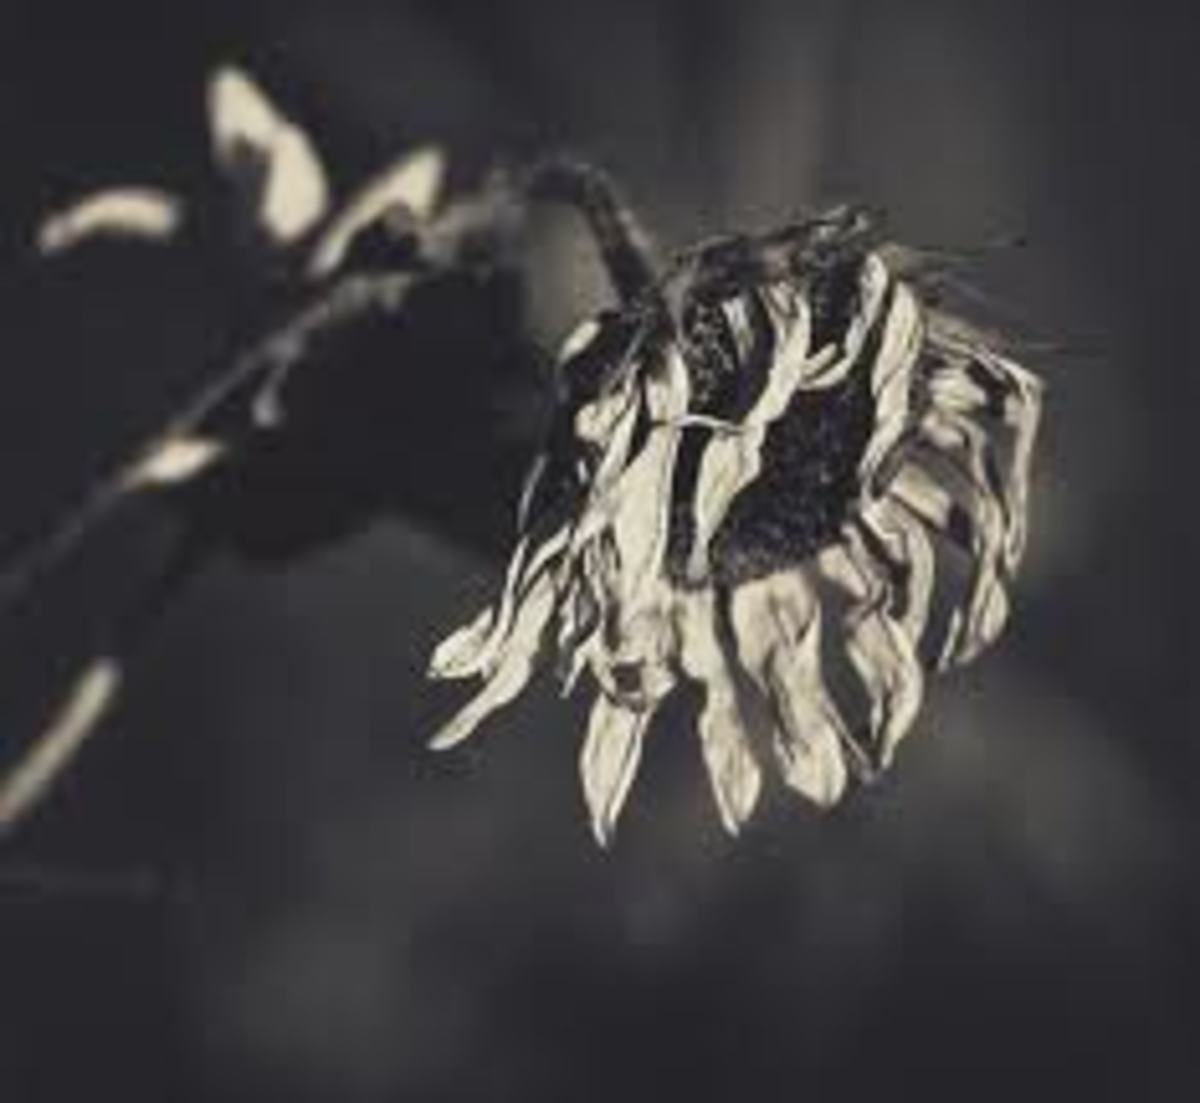 Sunflowers in the Dark: A Poem Regarding Human Trafficking, Including 7 Horrific Facts, and Music4Freedom